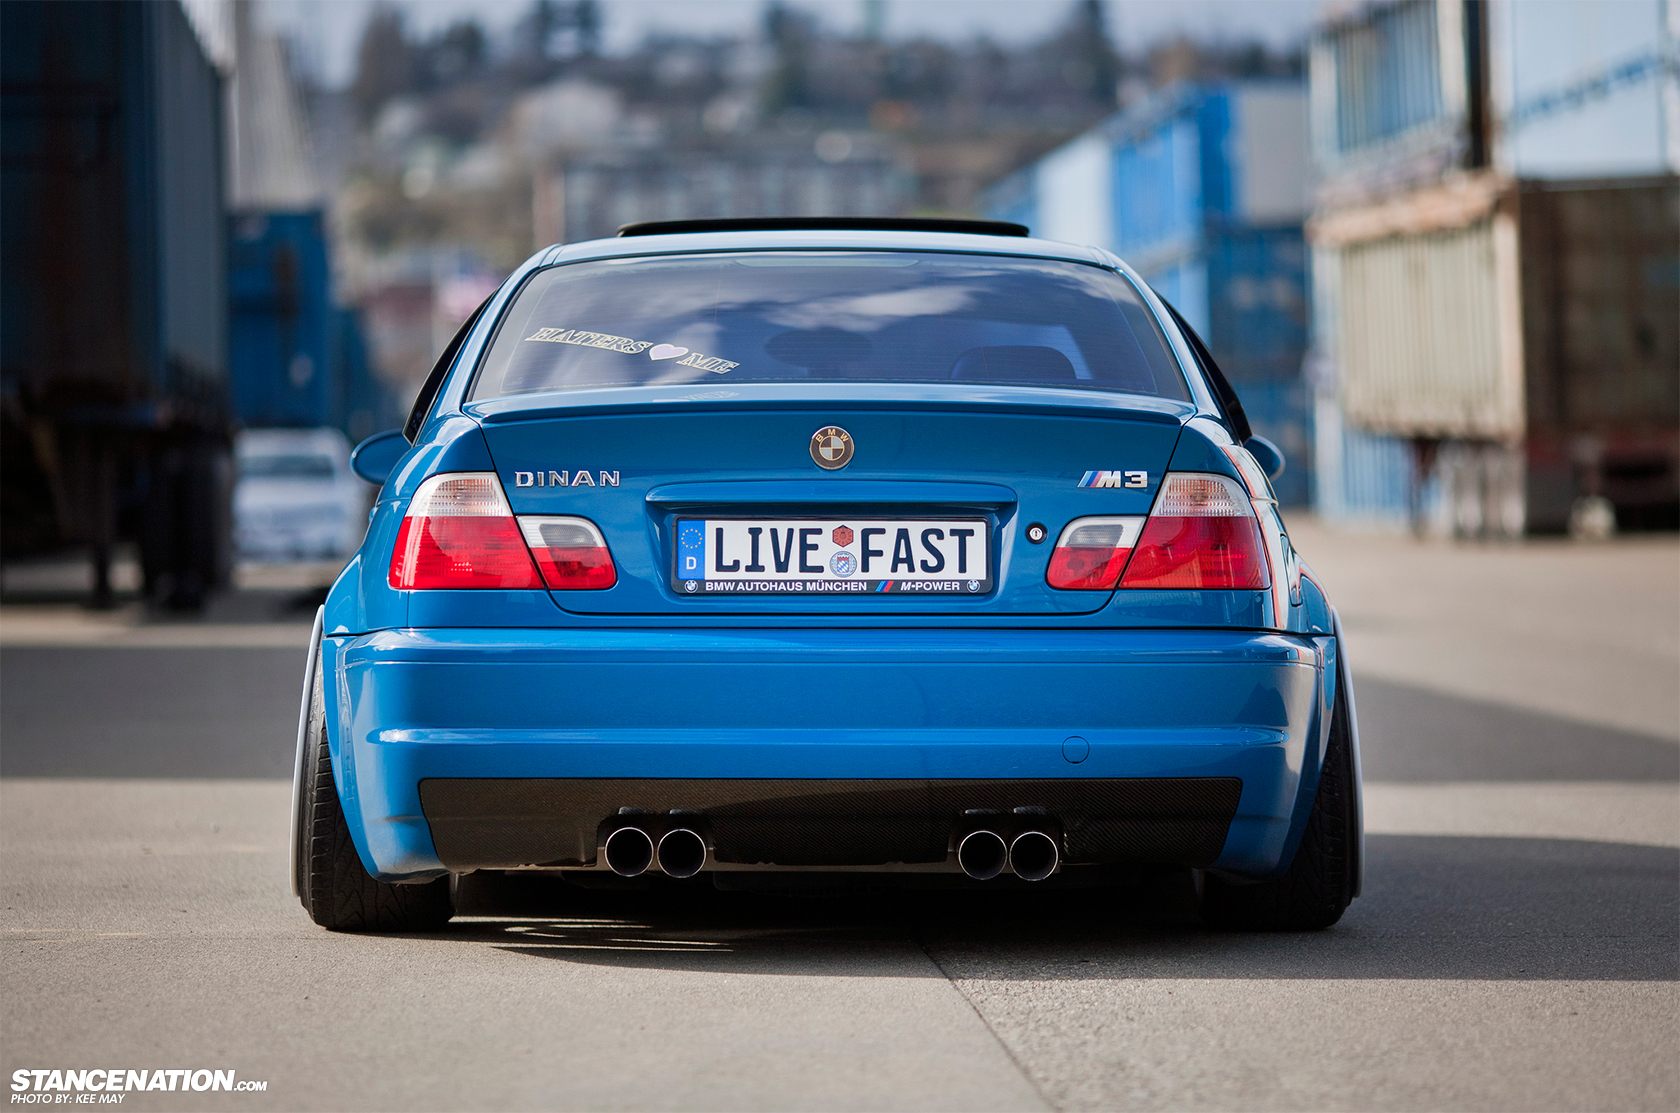 Bmw Dinan Wallpaper Hd Bmw M3 E46 Slammed 1680x1113 Wallpaper Teahub Io